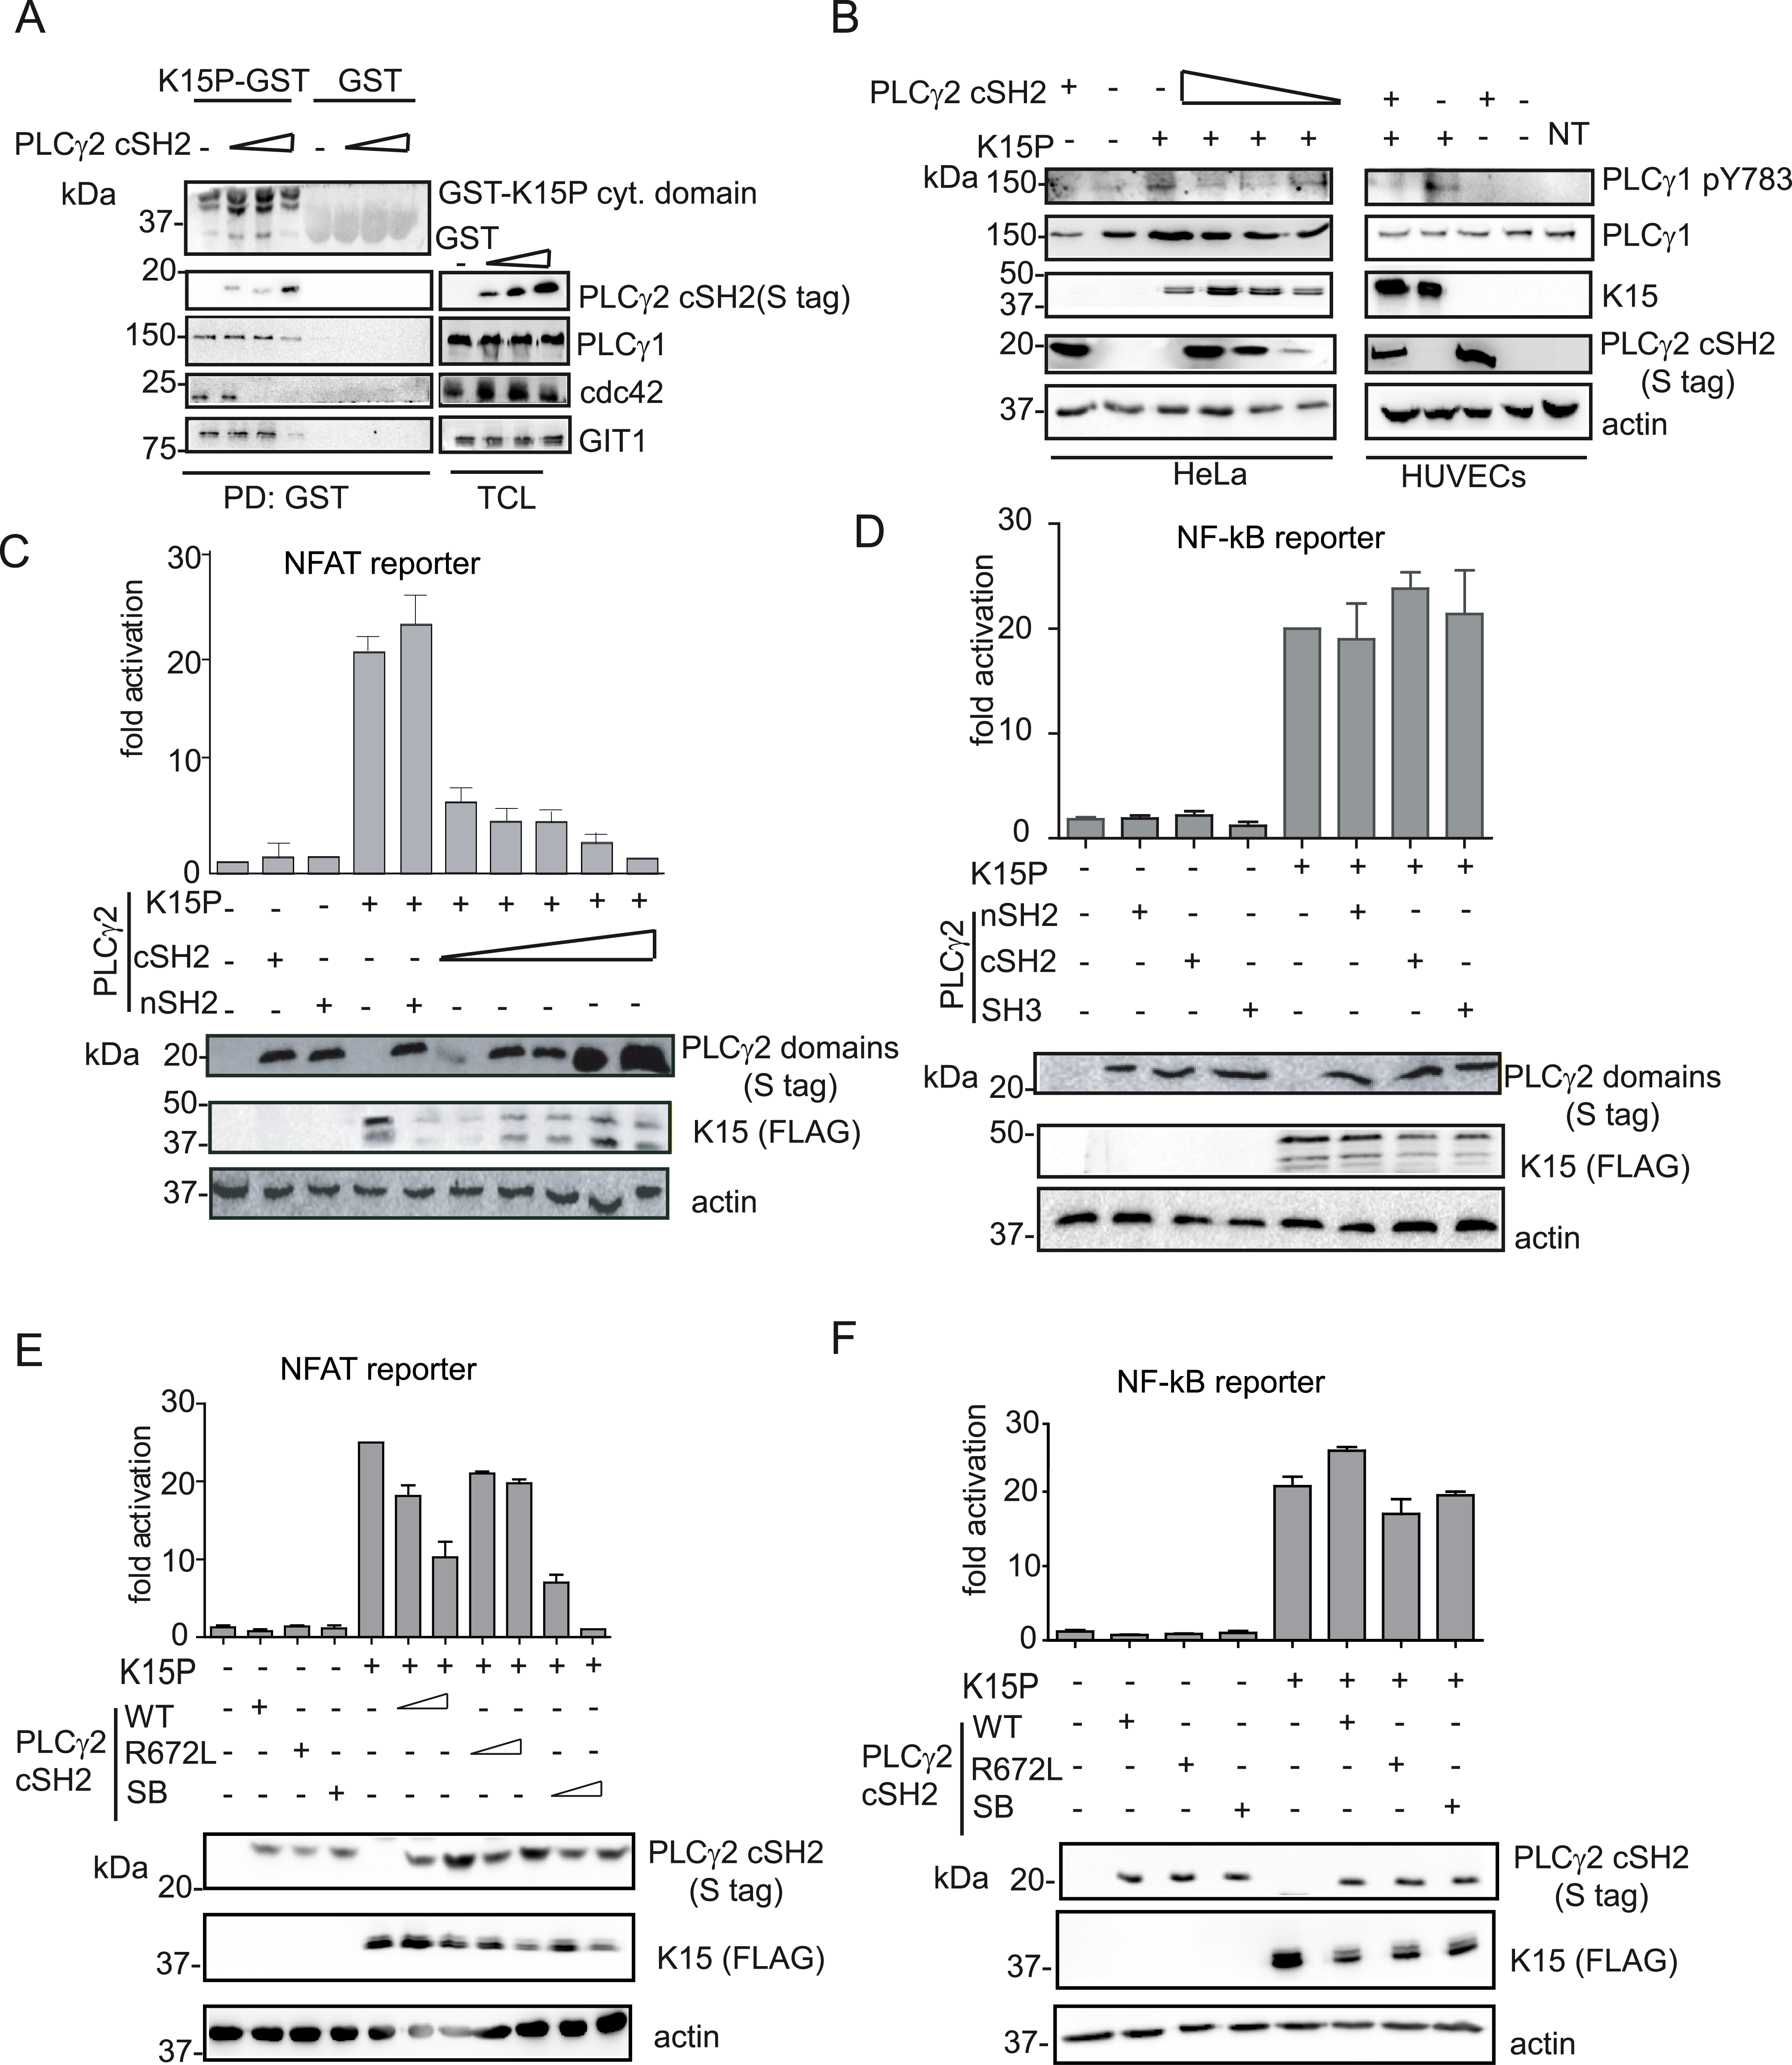 The isolated PLCγ2 cSH2 domain affects K15-mediated signalling in a dominant negative manner.